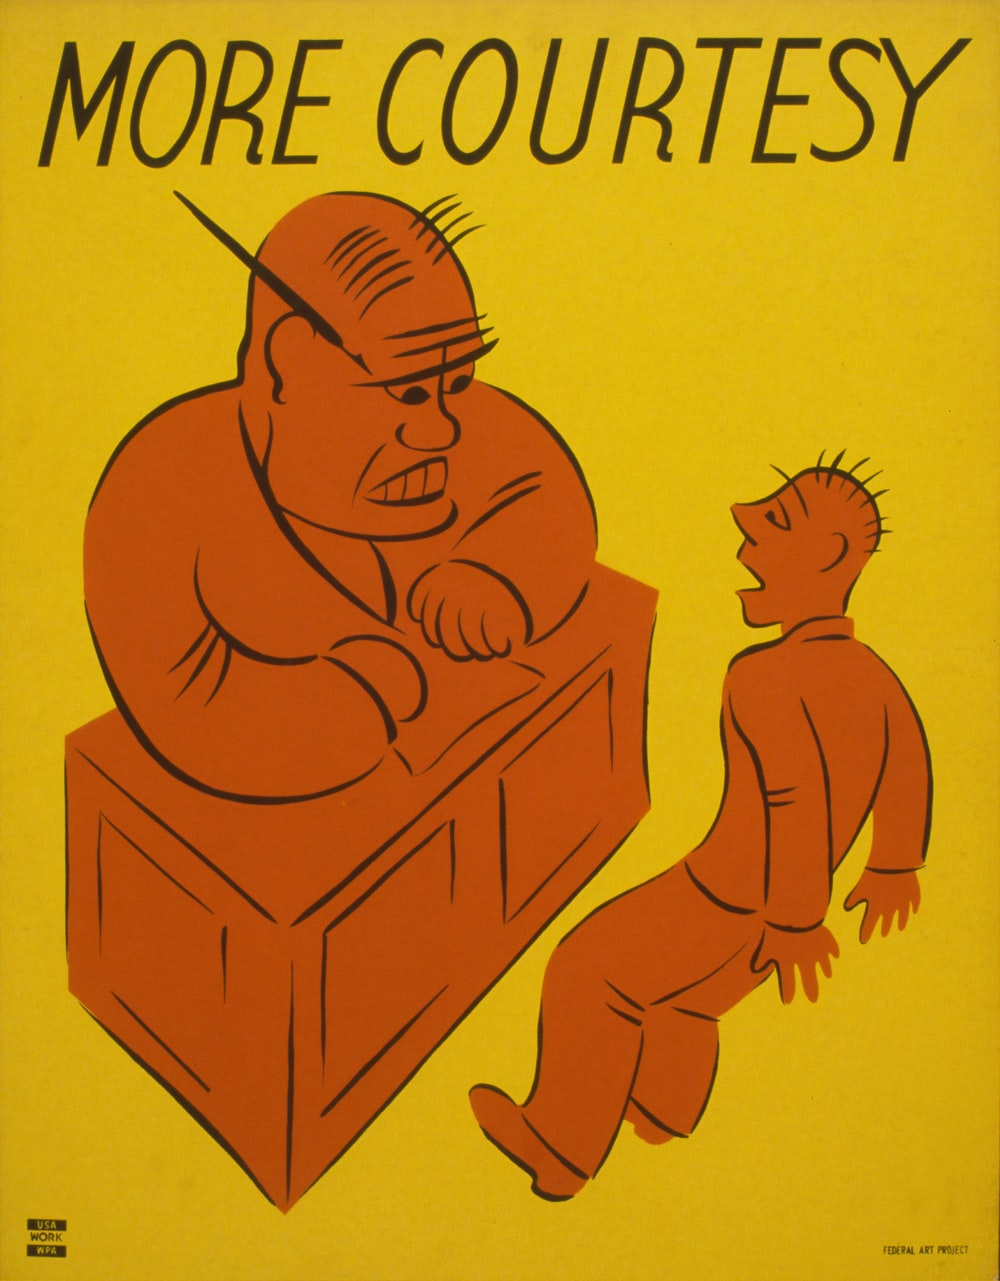 More Courtesy. WPA poster.